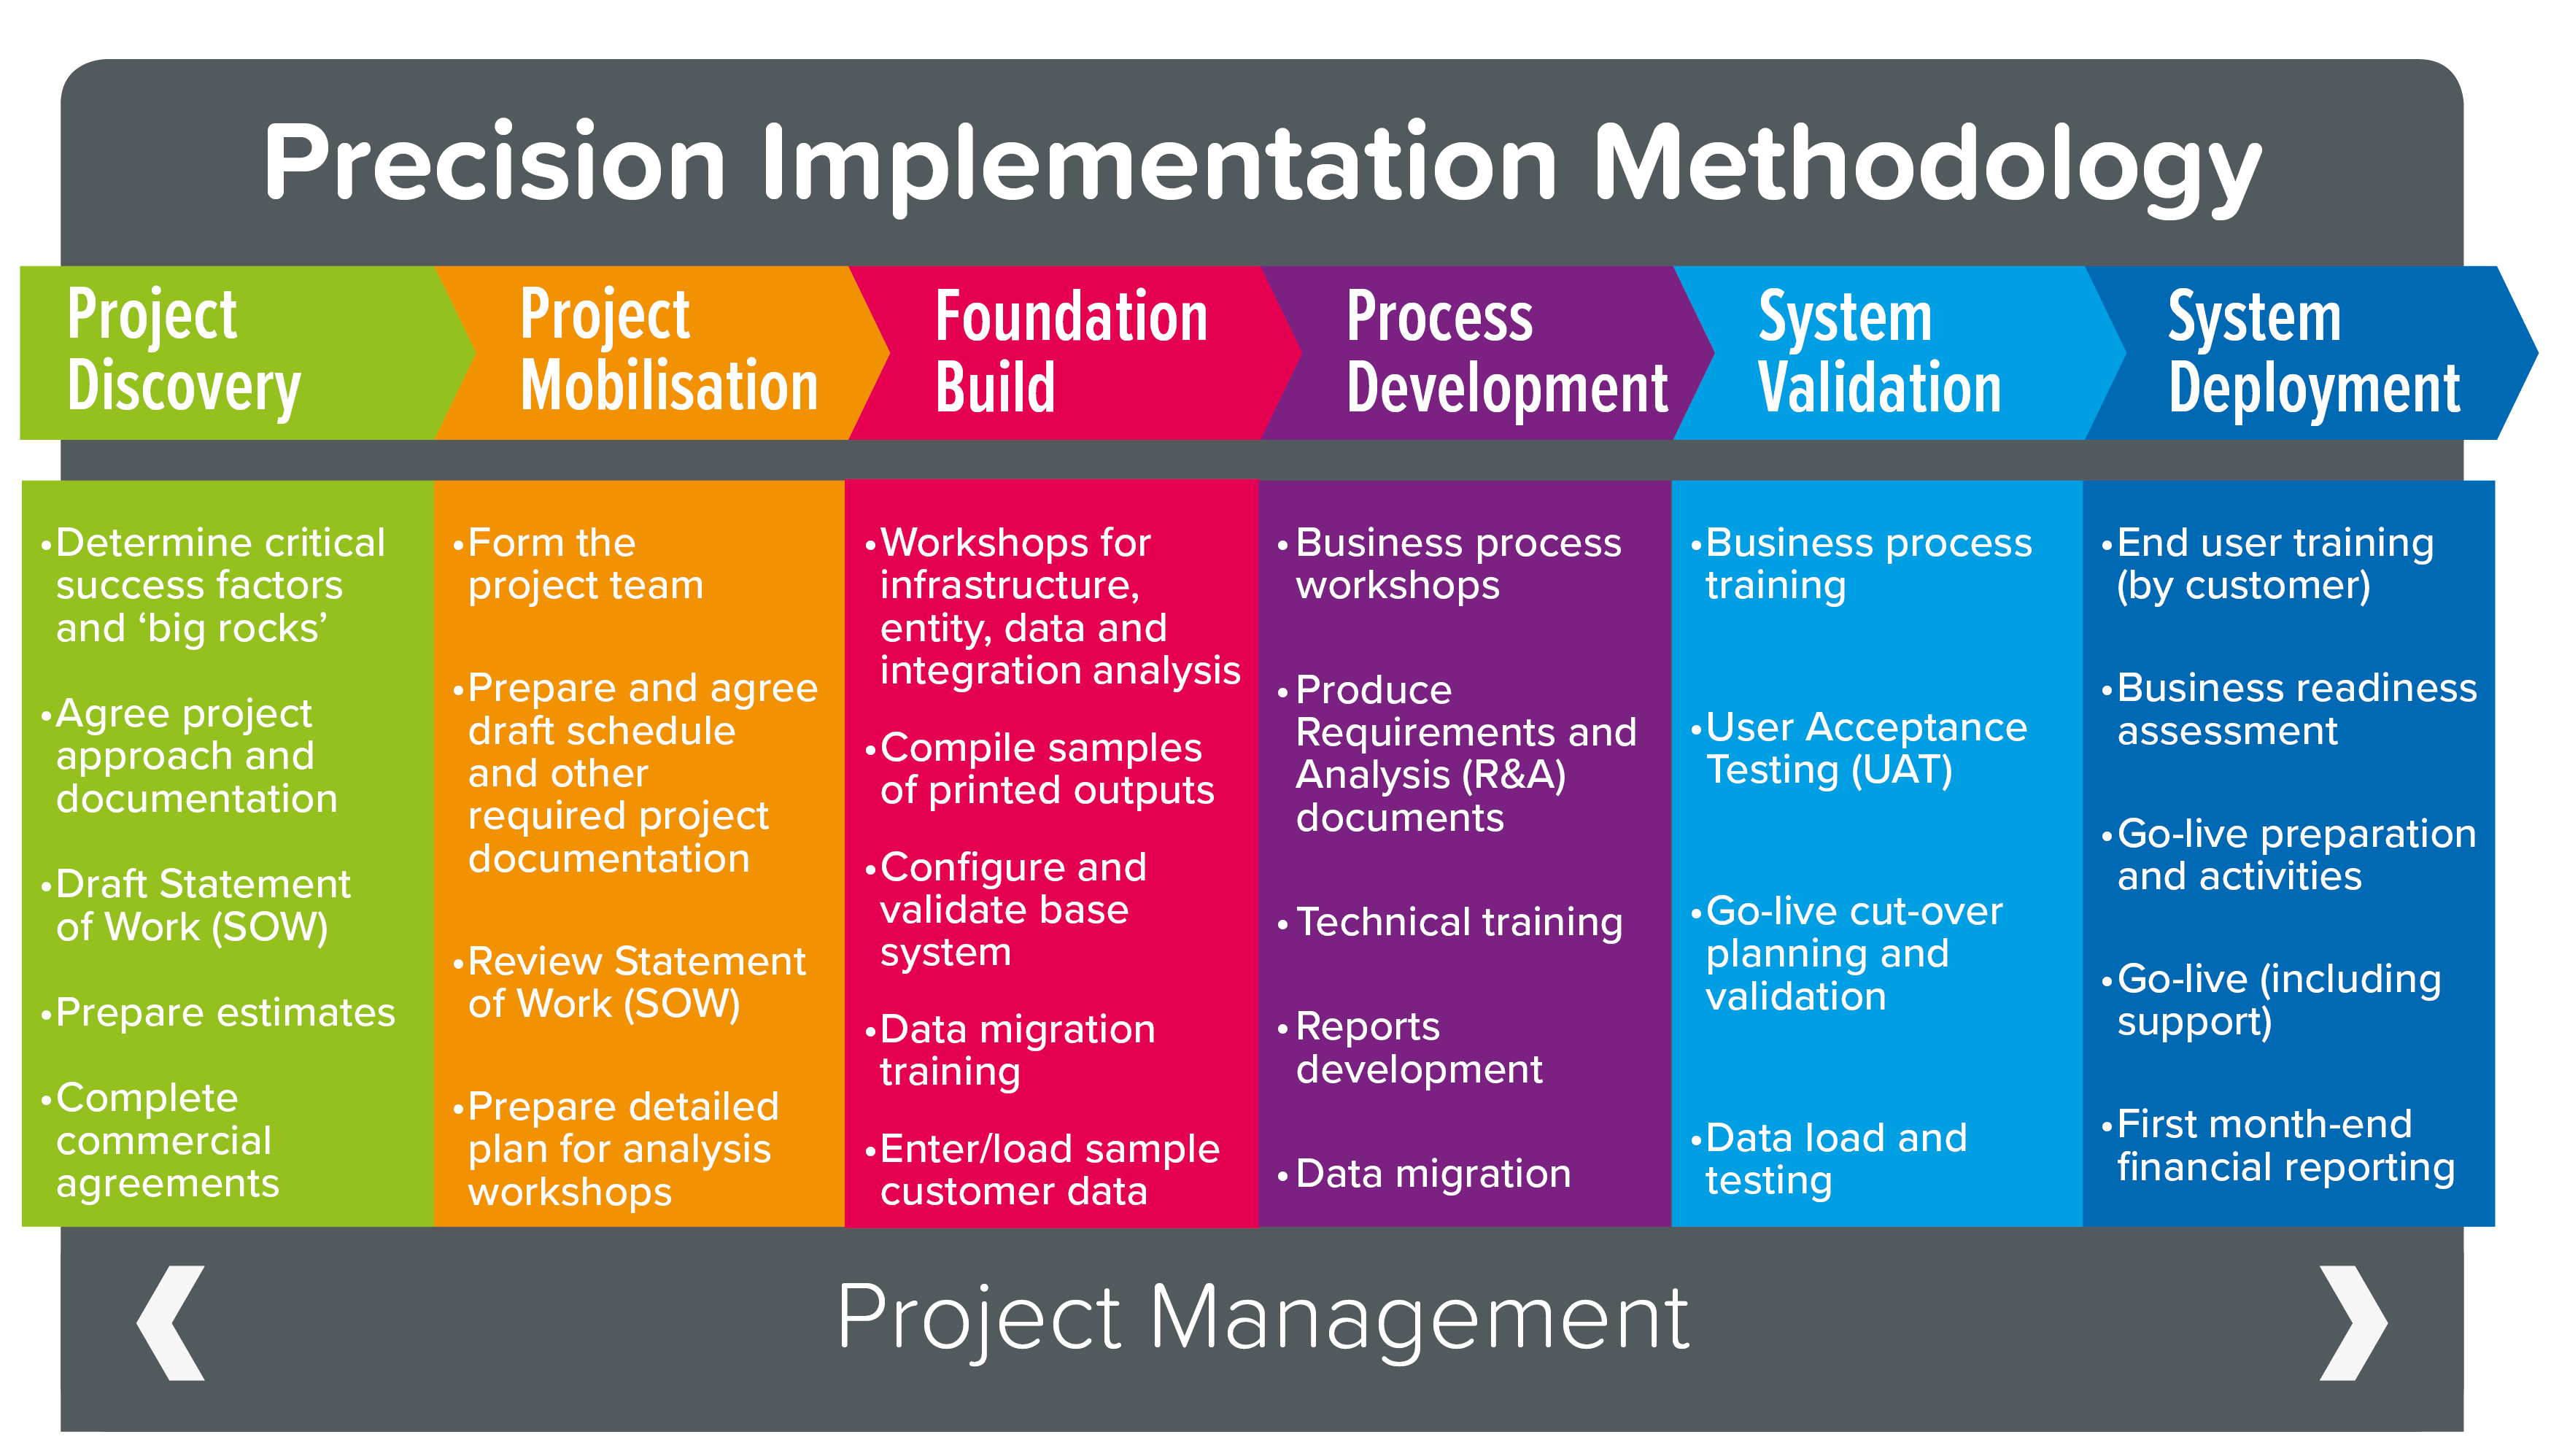 recision Implementation Methodology graphic showing the various stages from Project Discovery to System Deployment